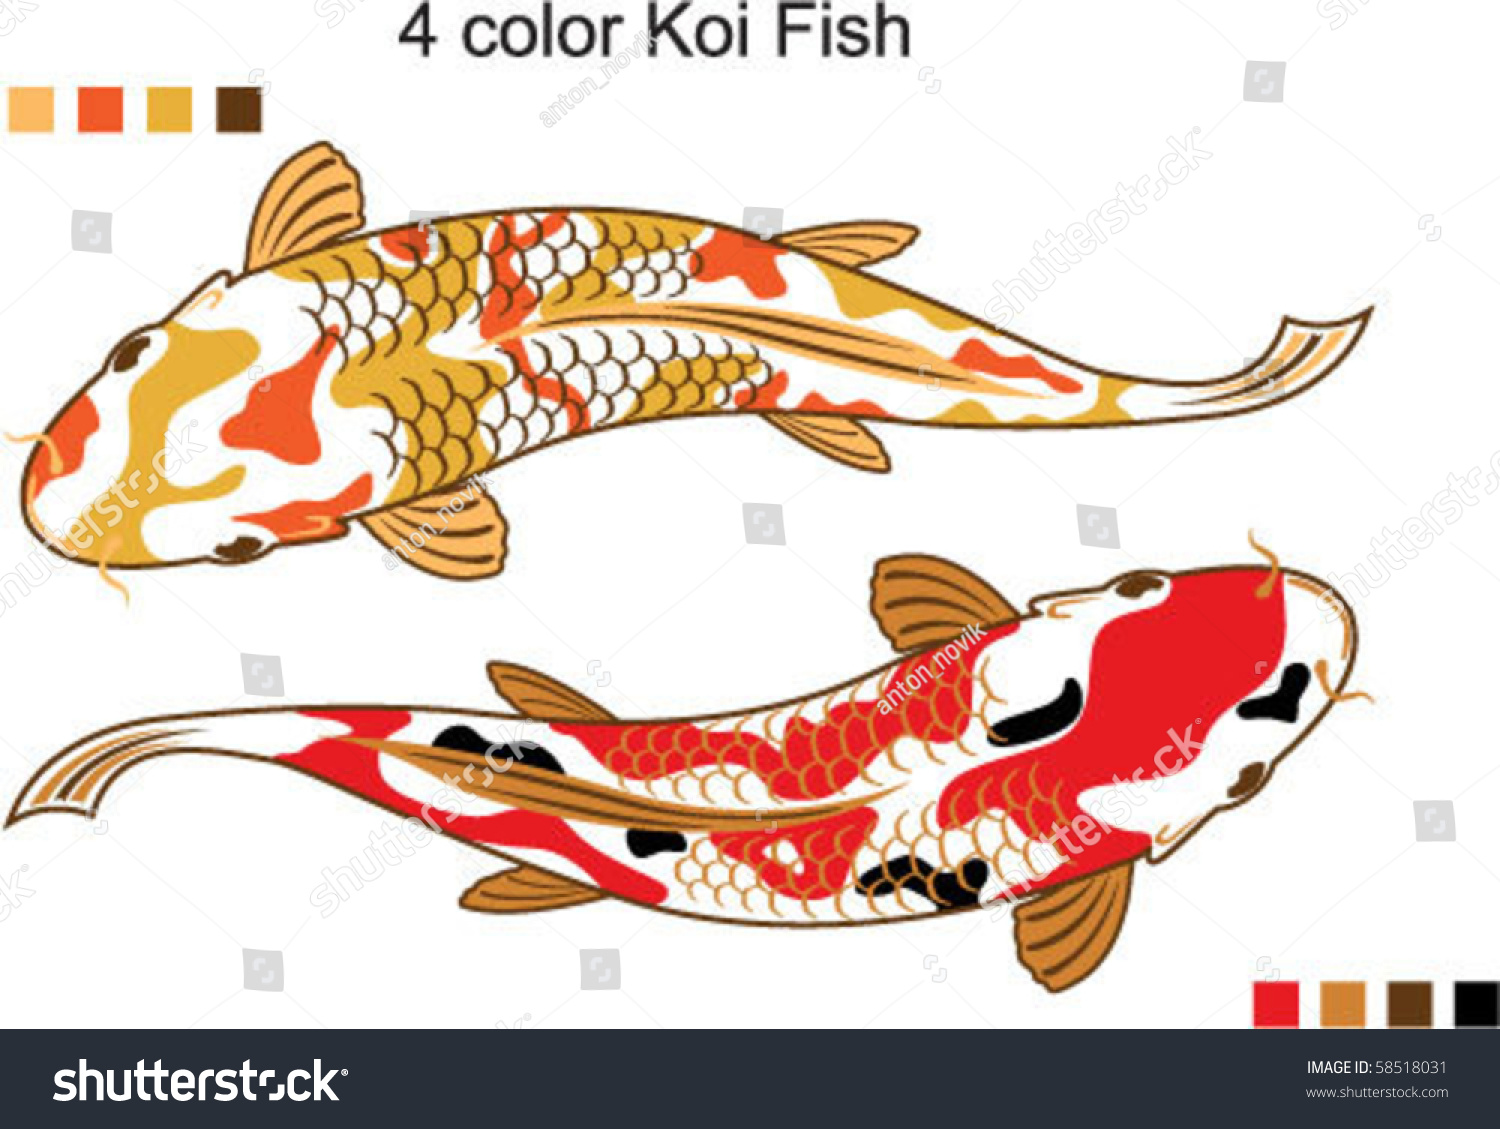 4 color koi fish vector stock vector 58518031 shutterstock for Koi fish vector